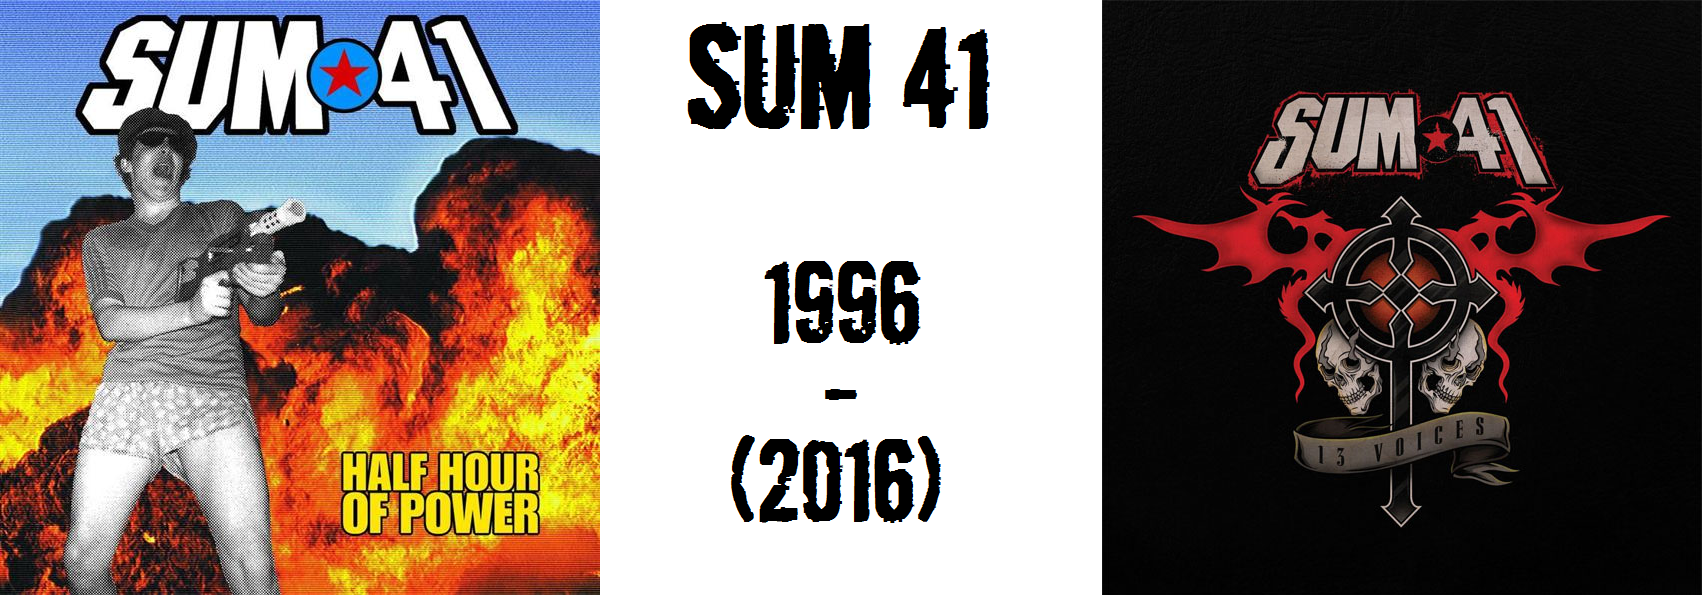 sum41.png